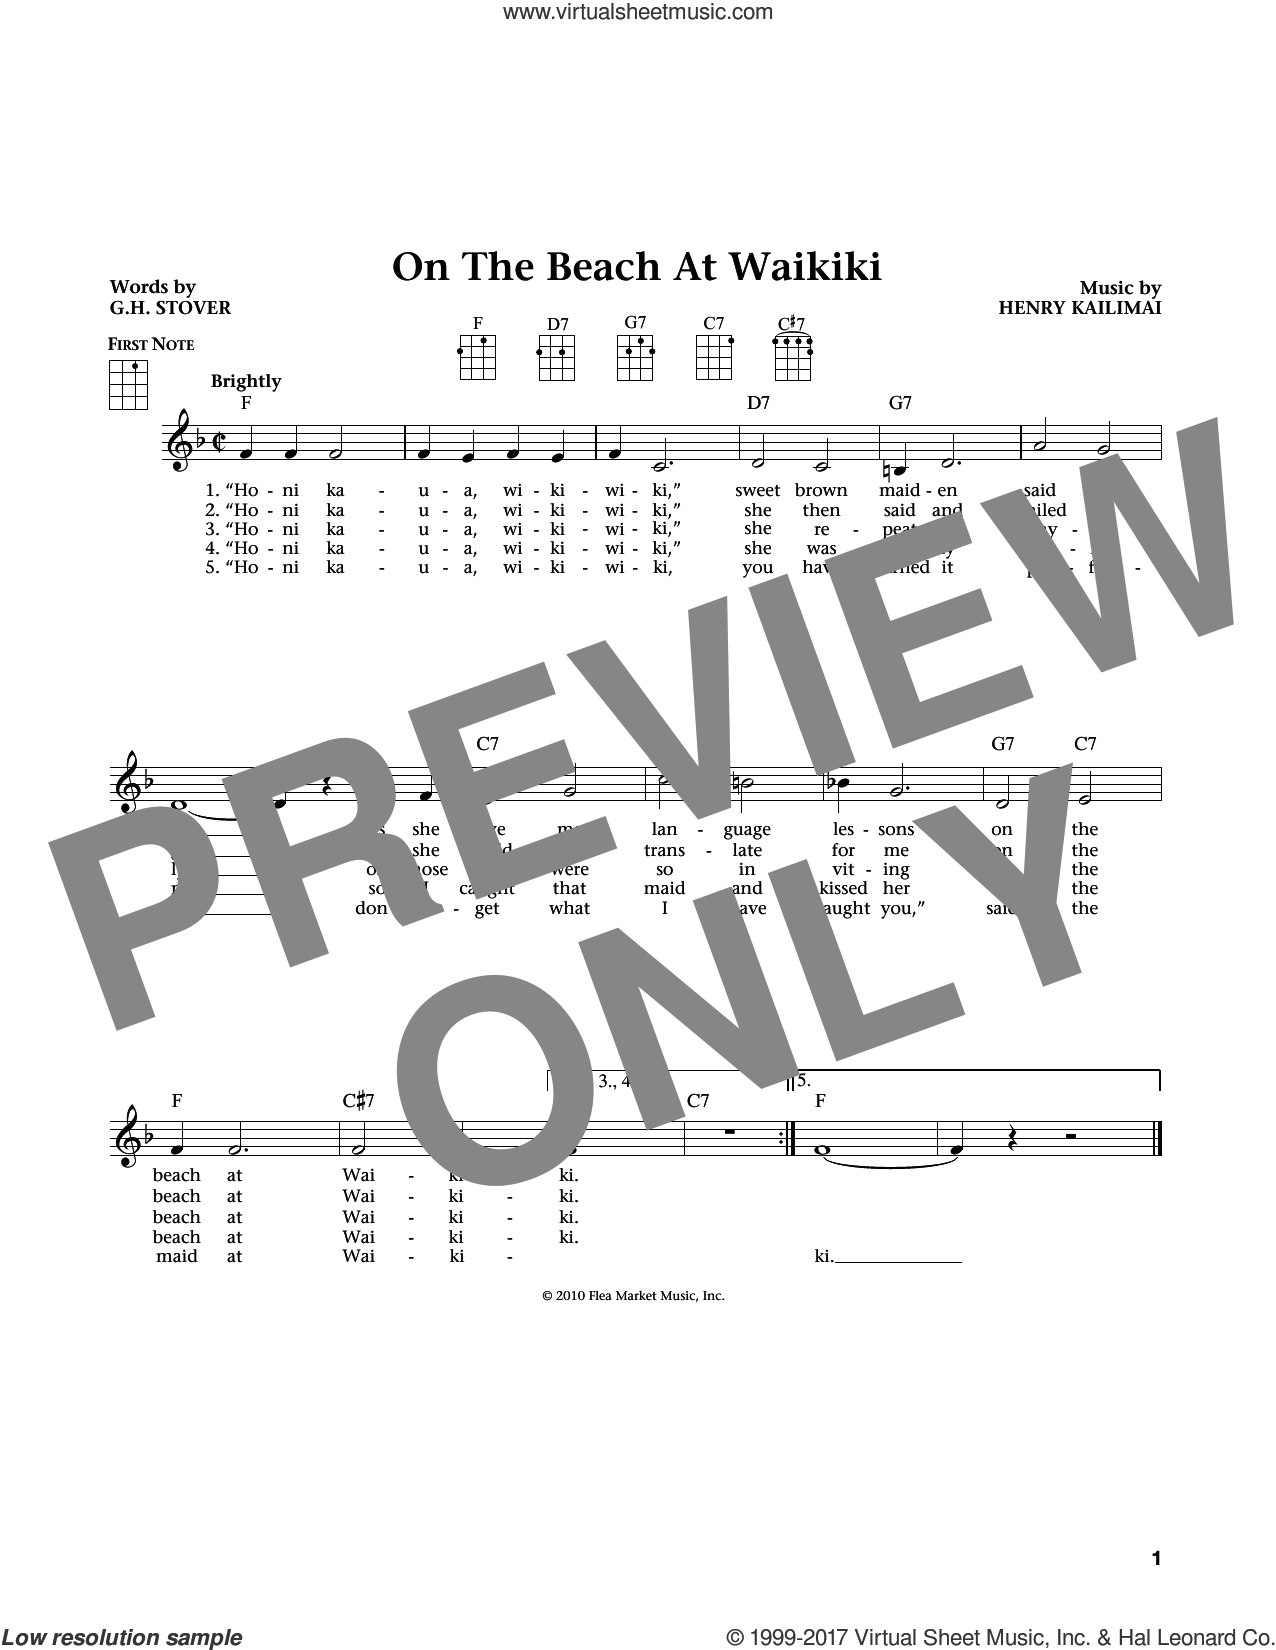 On The Beach At Waikiki sheet music for ukulele by G.H. Stover. Score Image Preview.